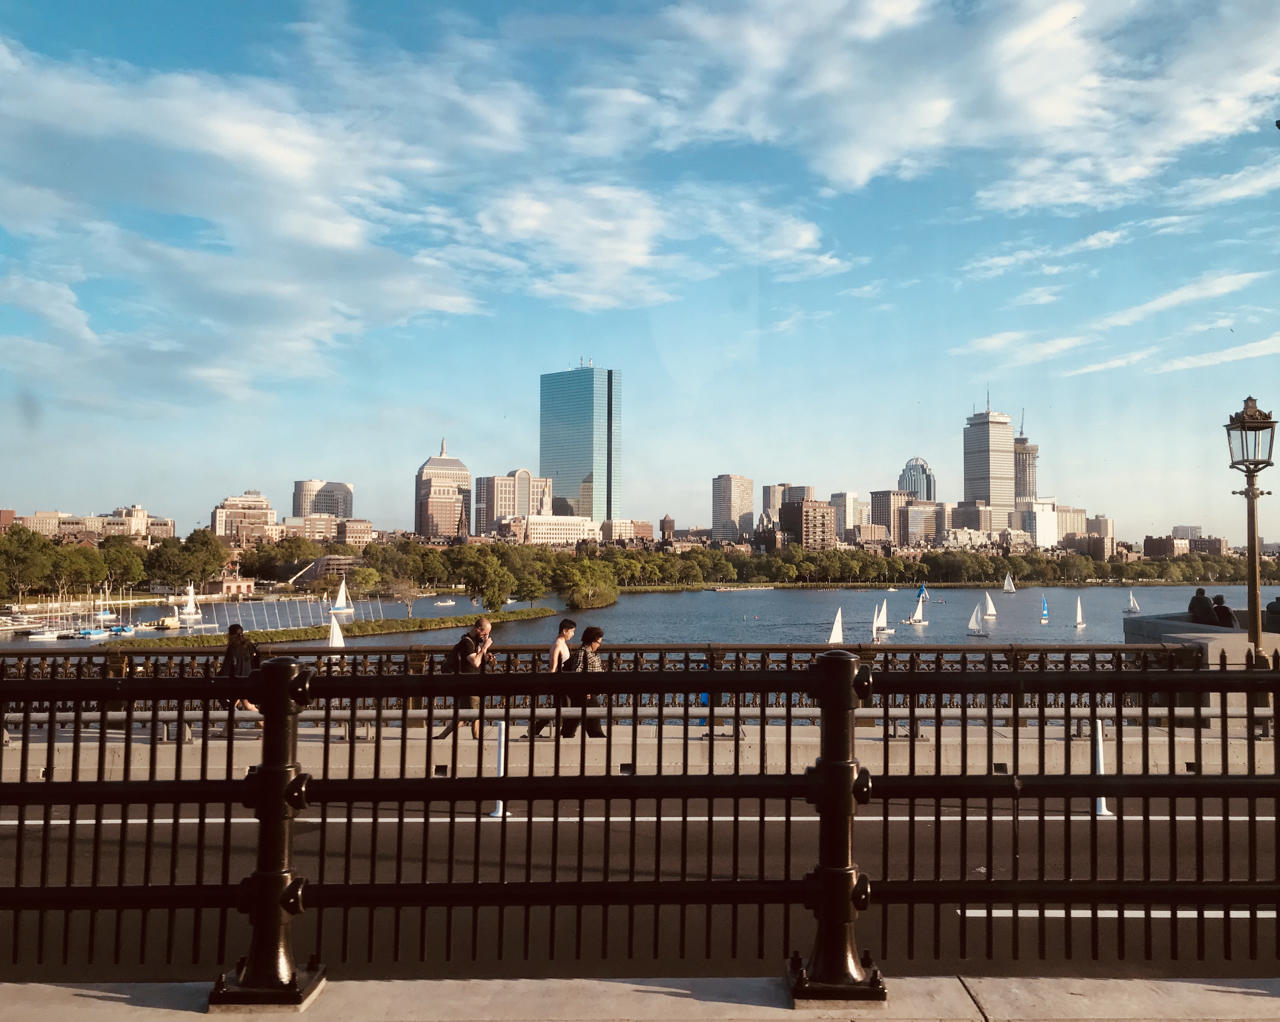 Boston view from a moving train on the Red Line